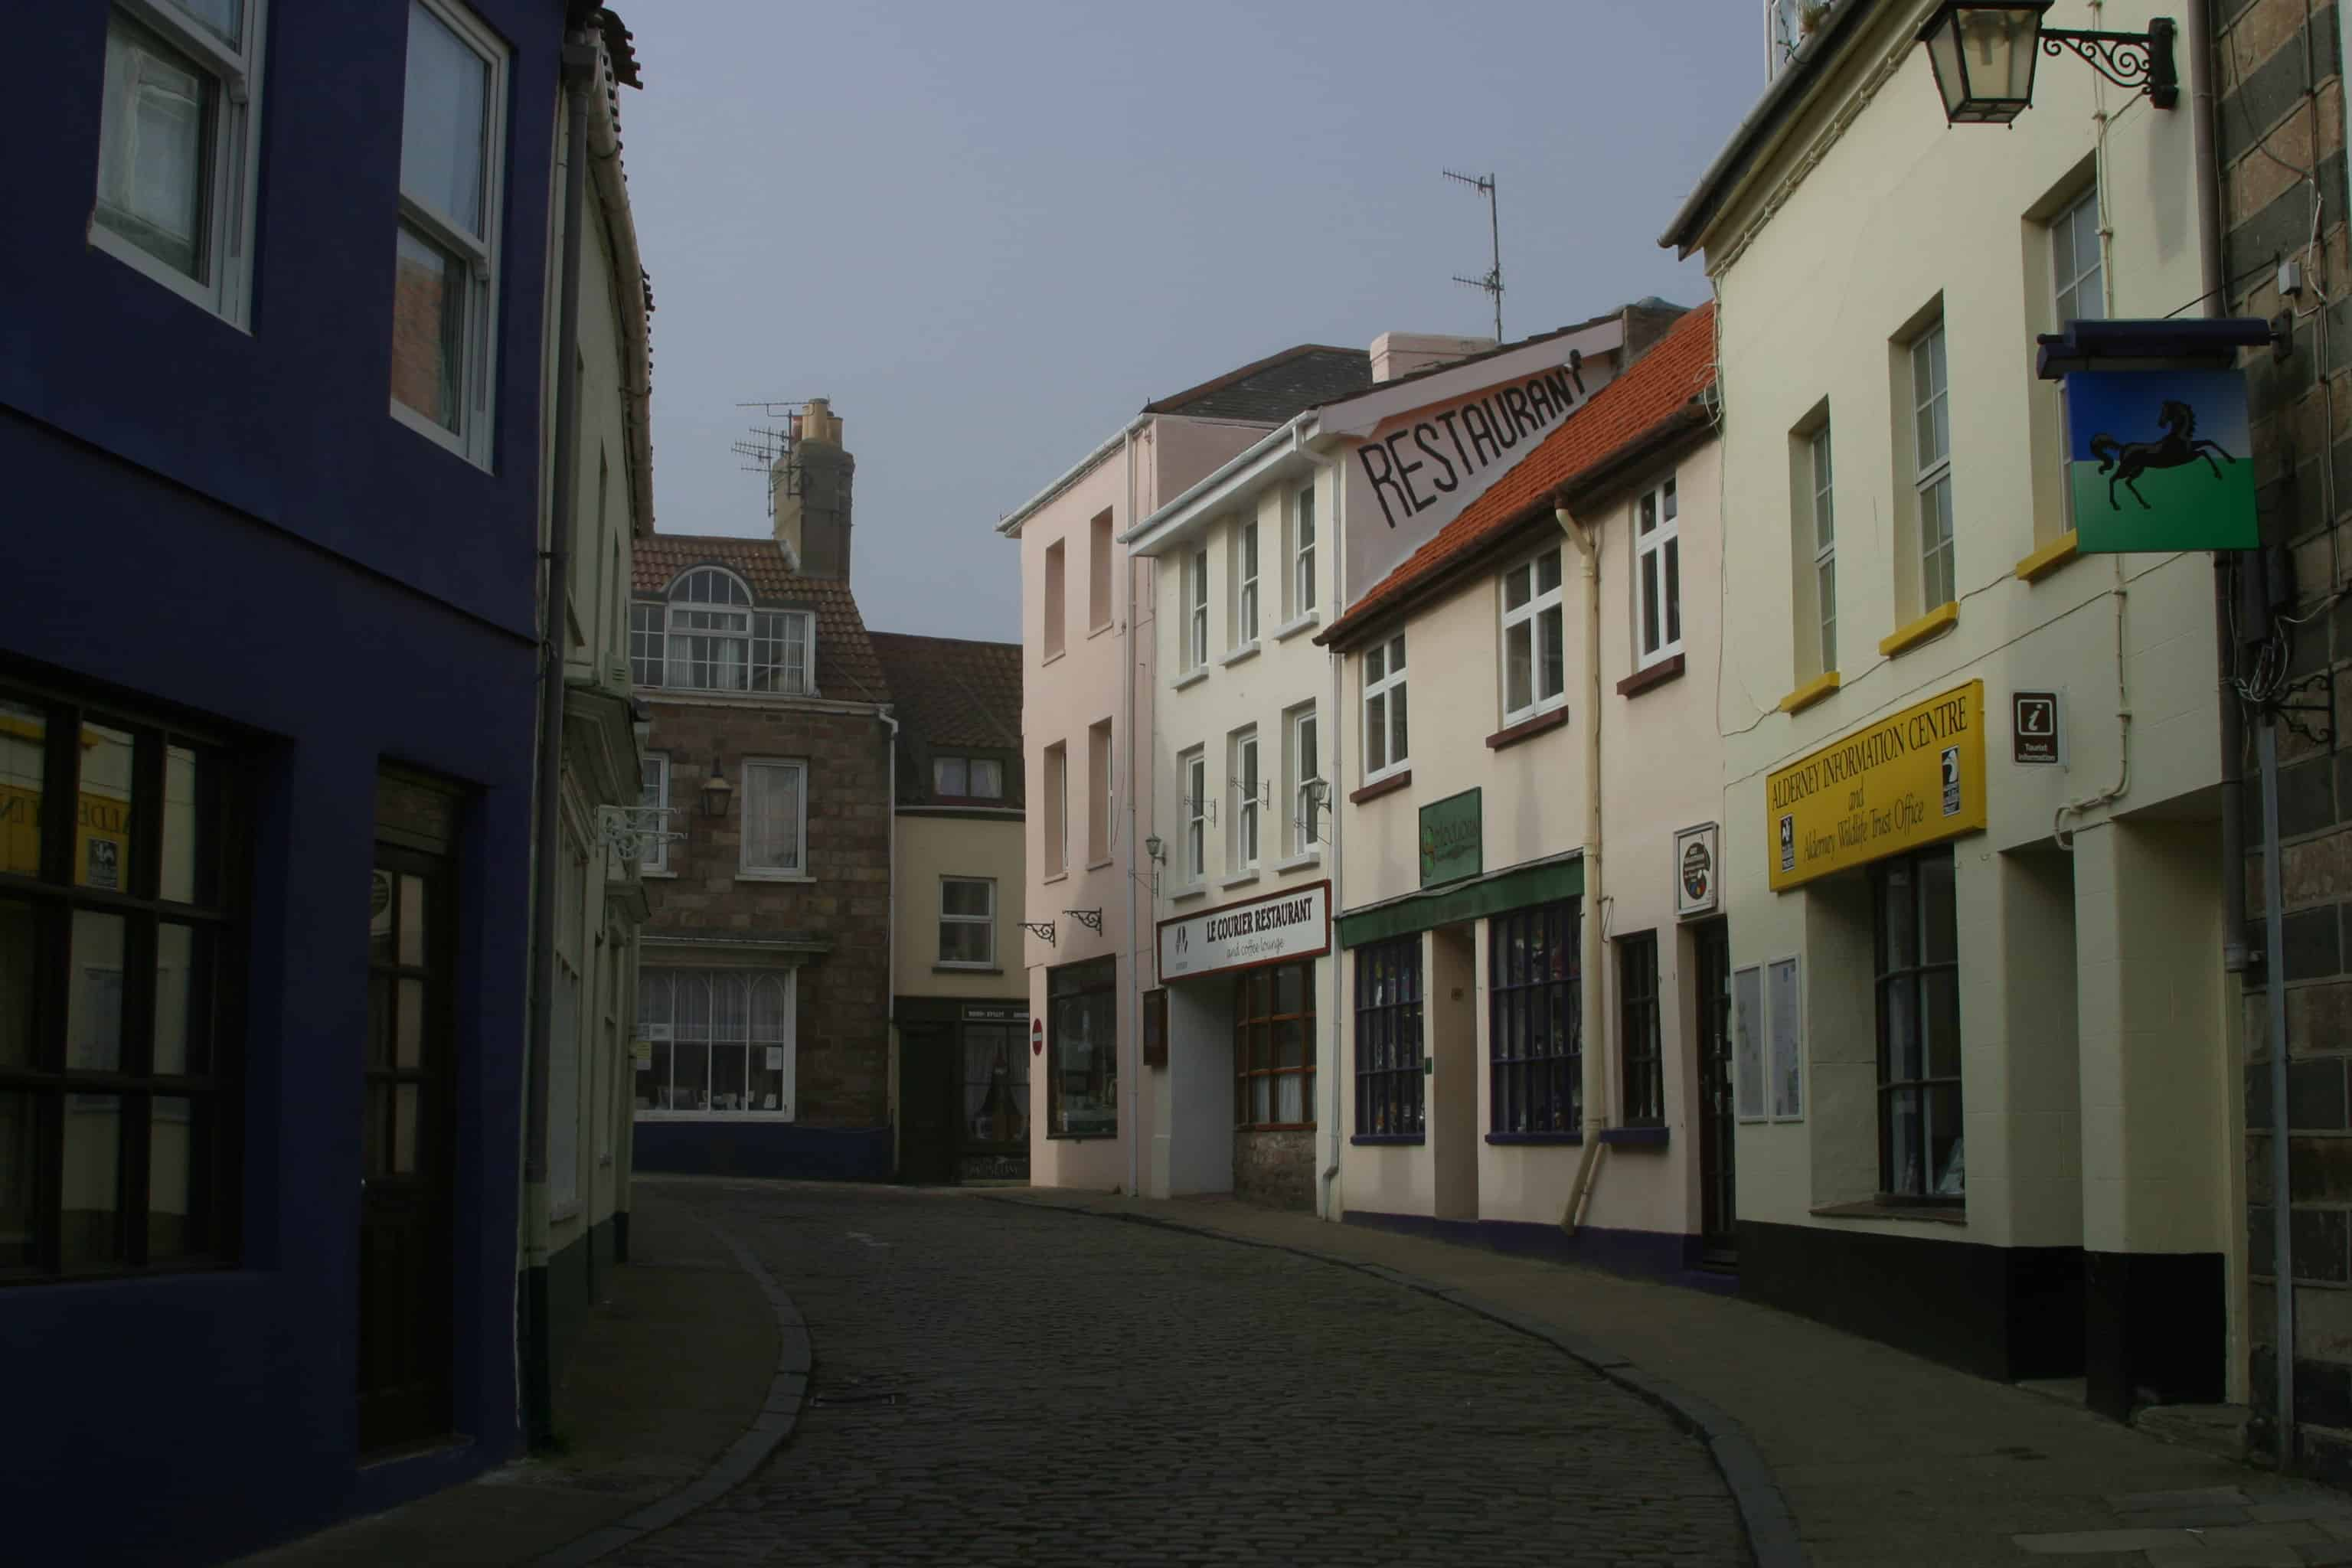 One of the main streets in St Anne, Alderney's town. Copyright: Dr Mike Pienkowski